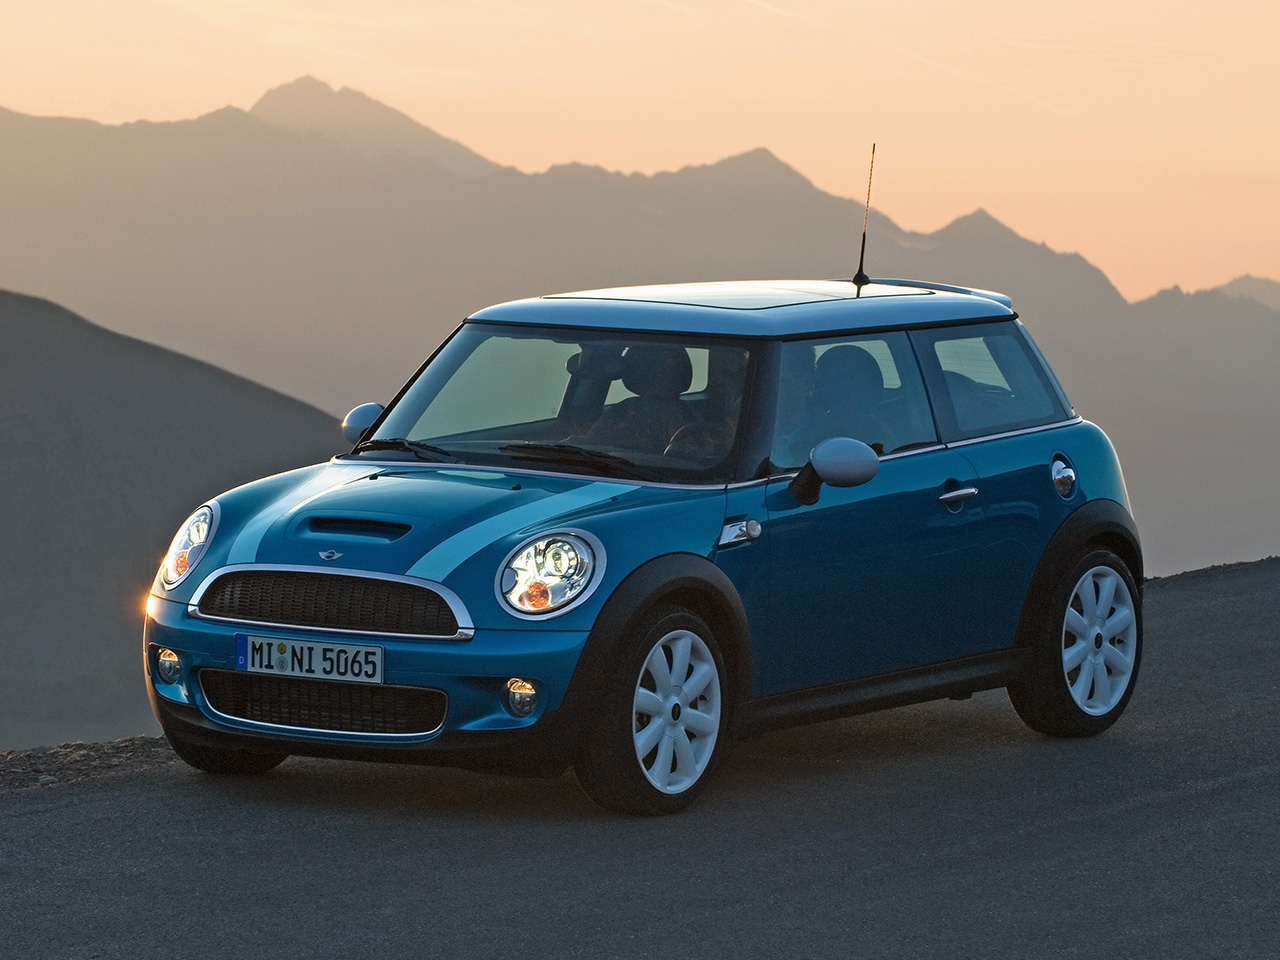 2007-Mini-Cooper-S-Front-And-Side-1280x960